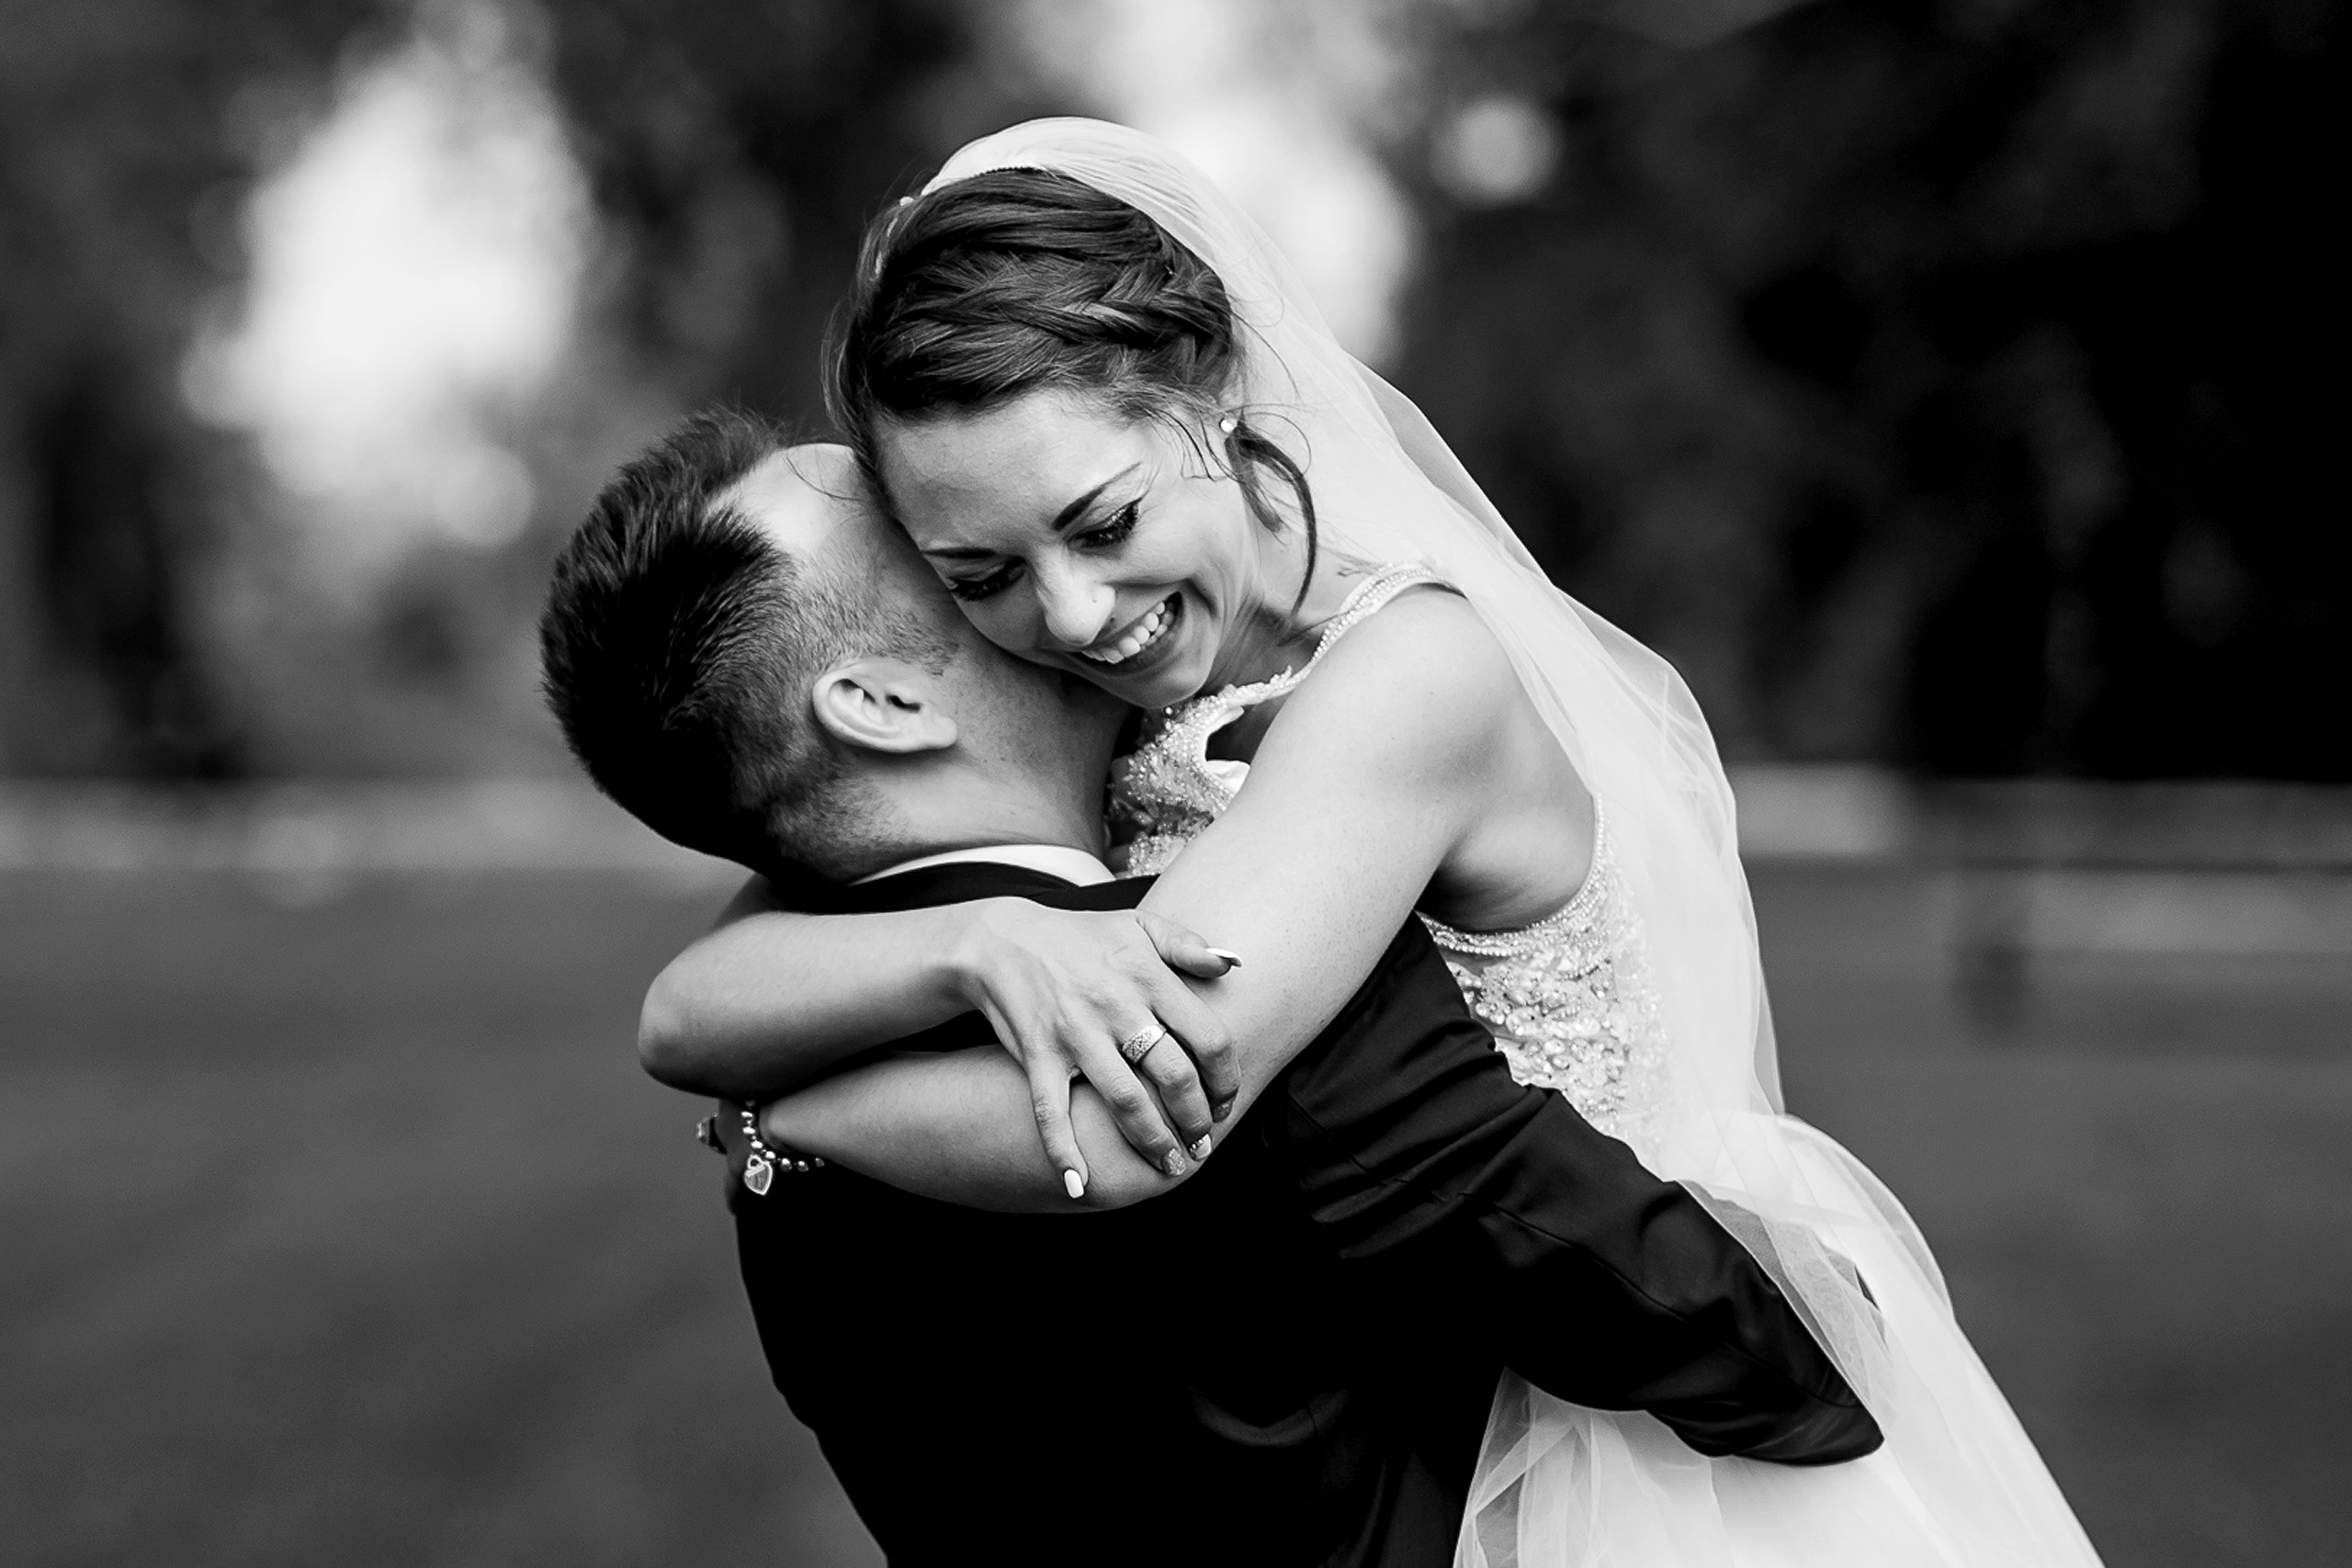 bride and groom embracing in the park by calgary wedding photographer sean leblanc